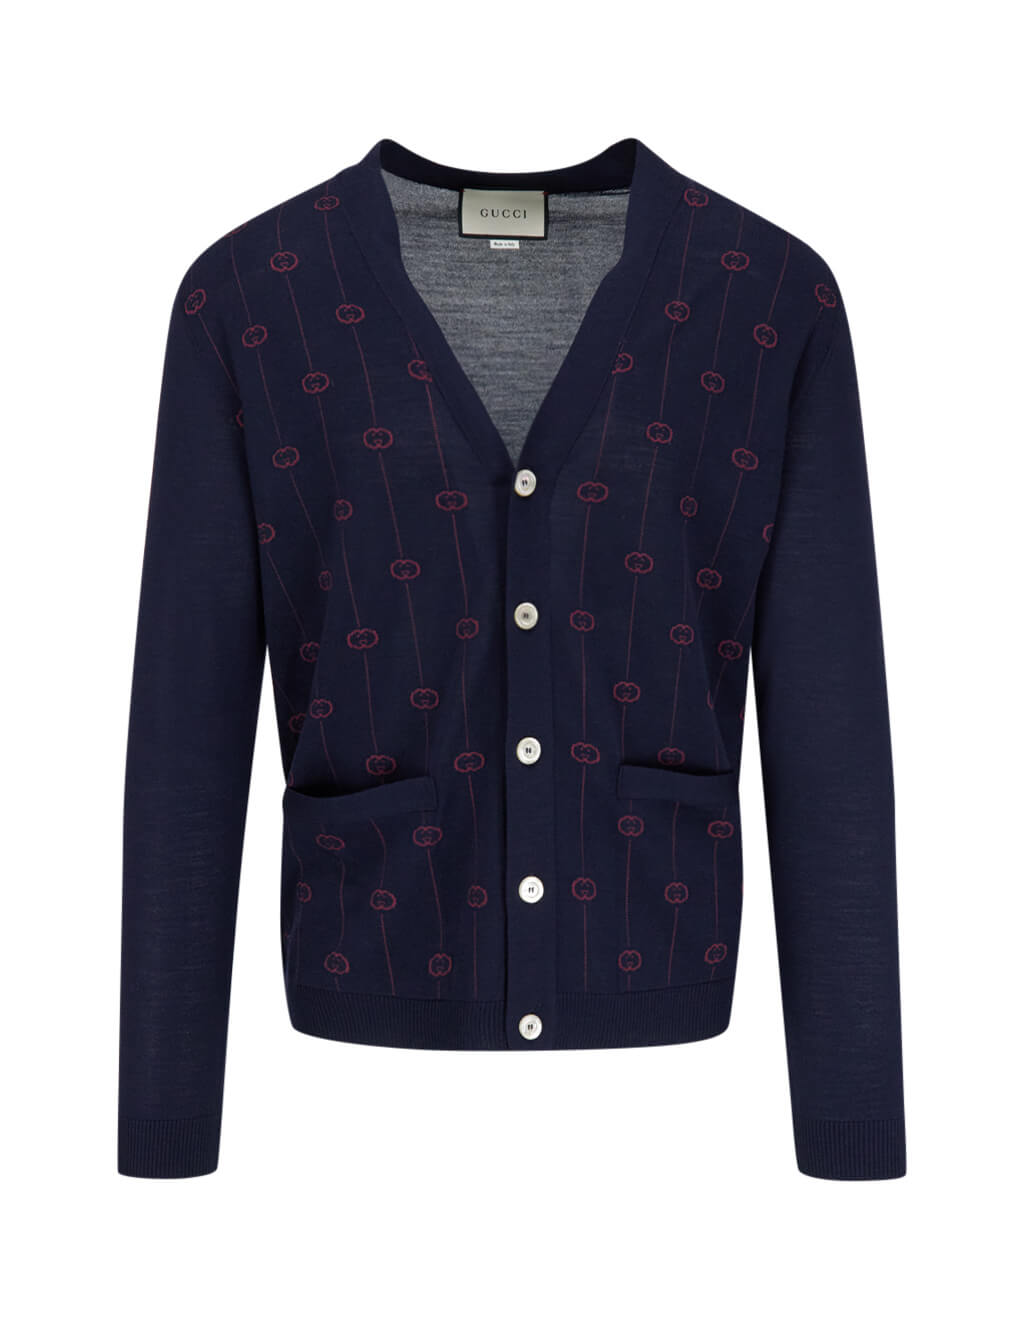 Men's Gucci Jacquard GG Cardigan in Ink Blue 576901 XKAUM 4542